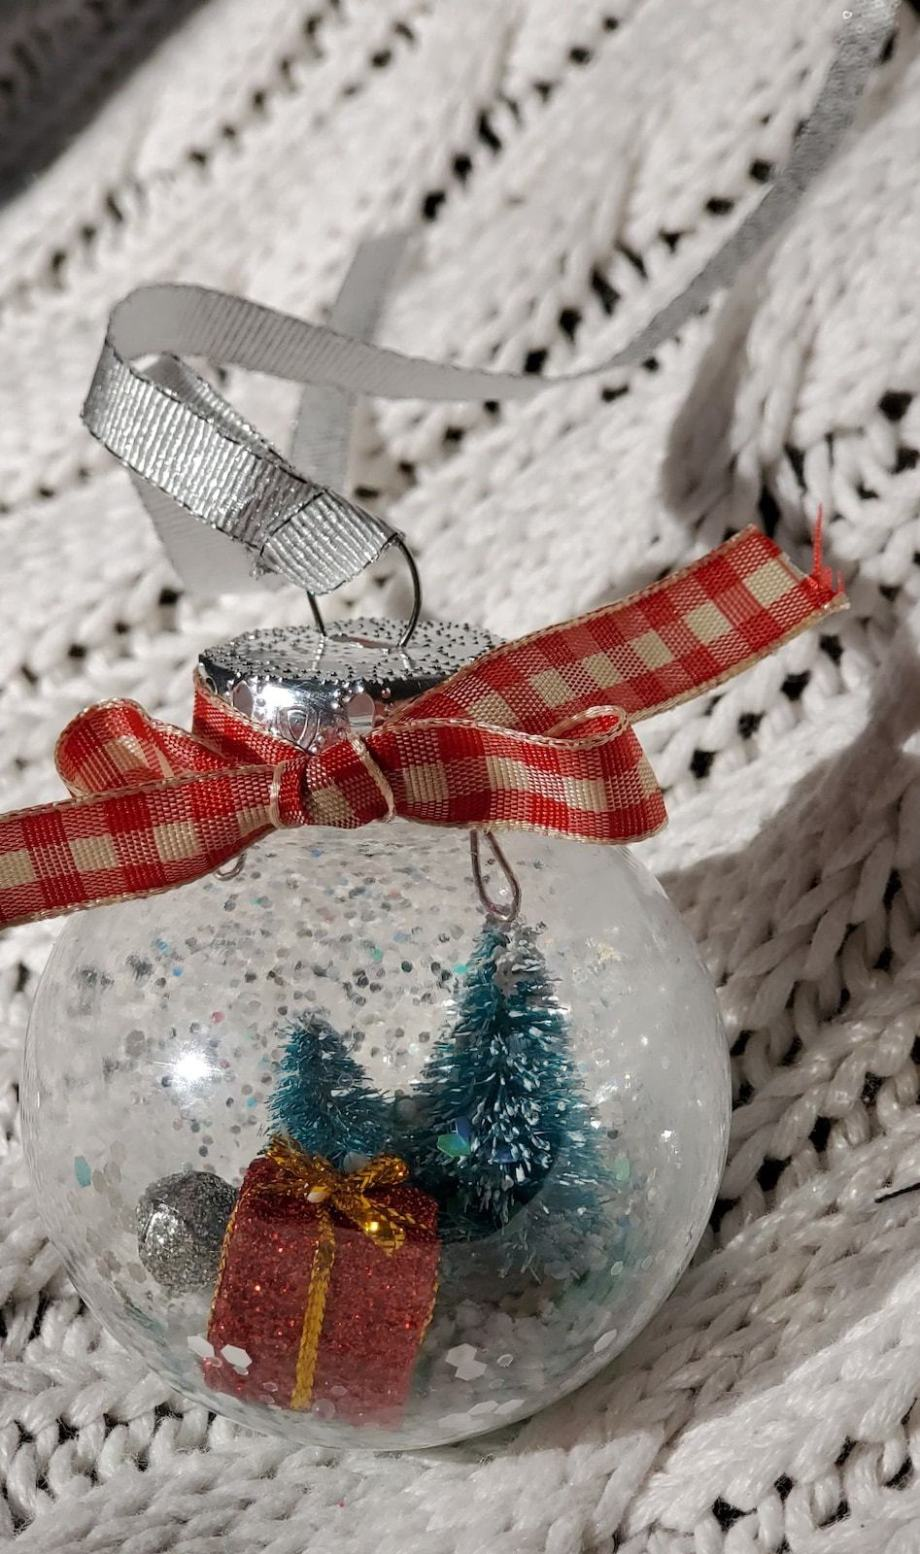 Photo of clear ornament with Christmas trees, present, jingle bells inside.